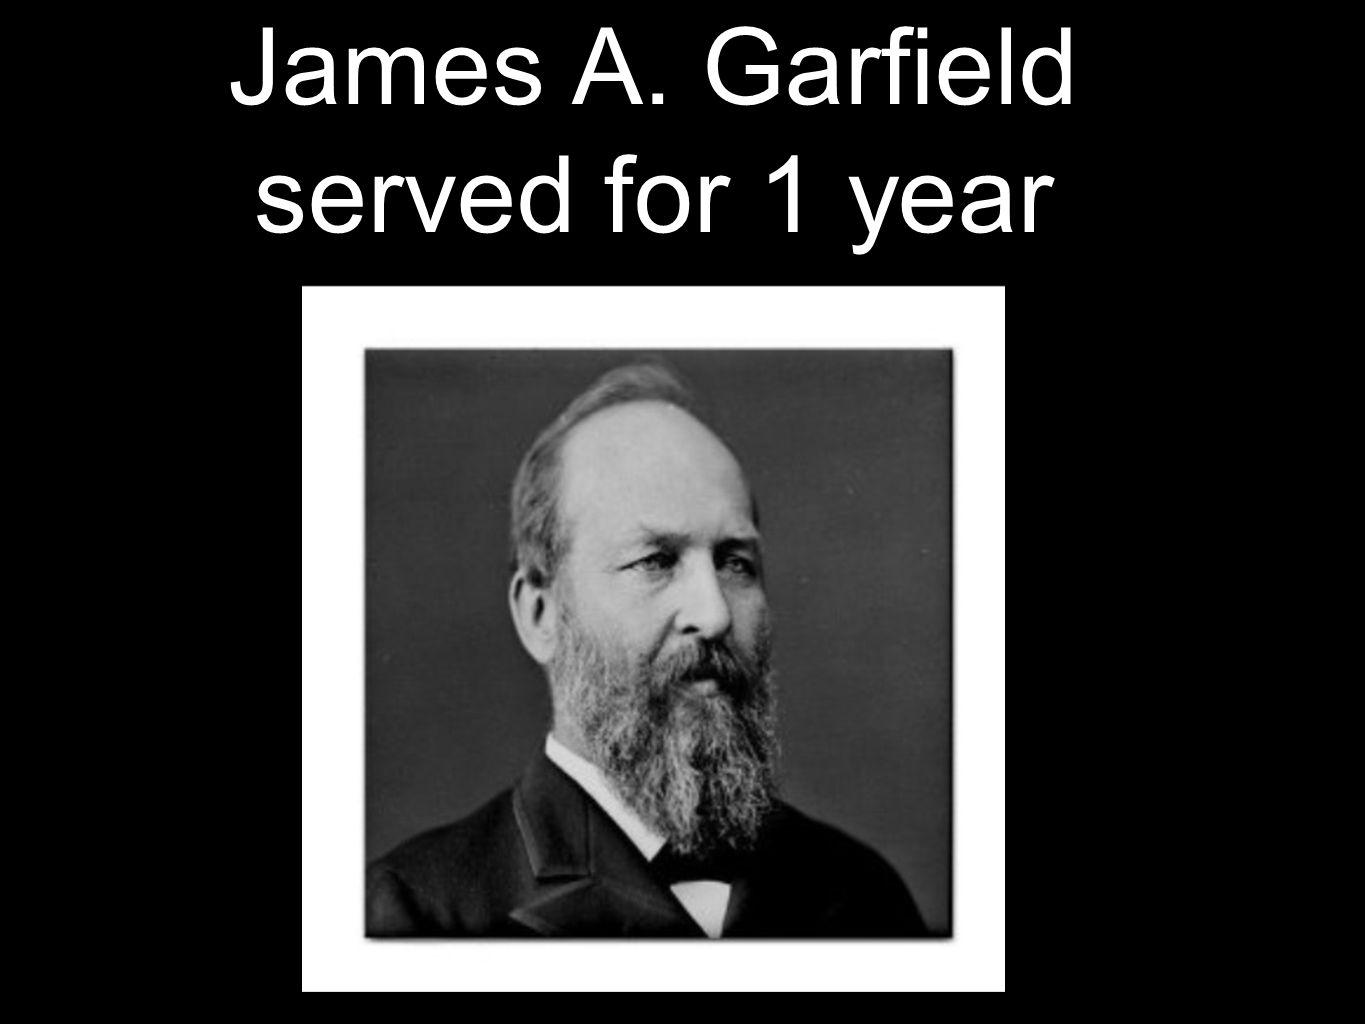 James A. Garfield served for 1 year